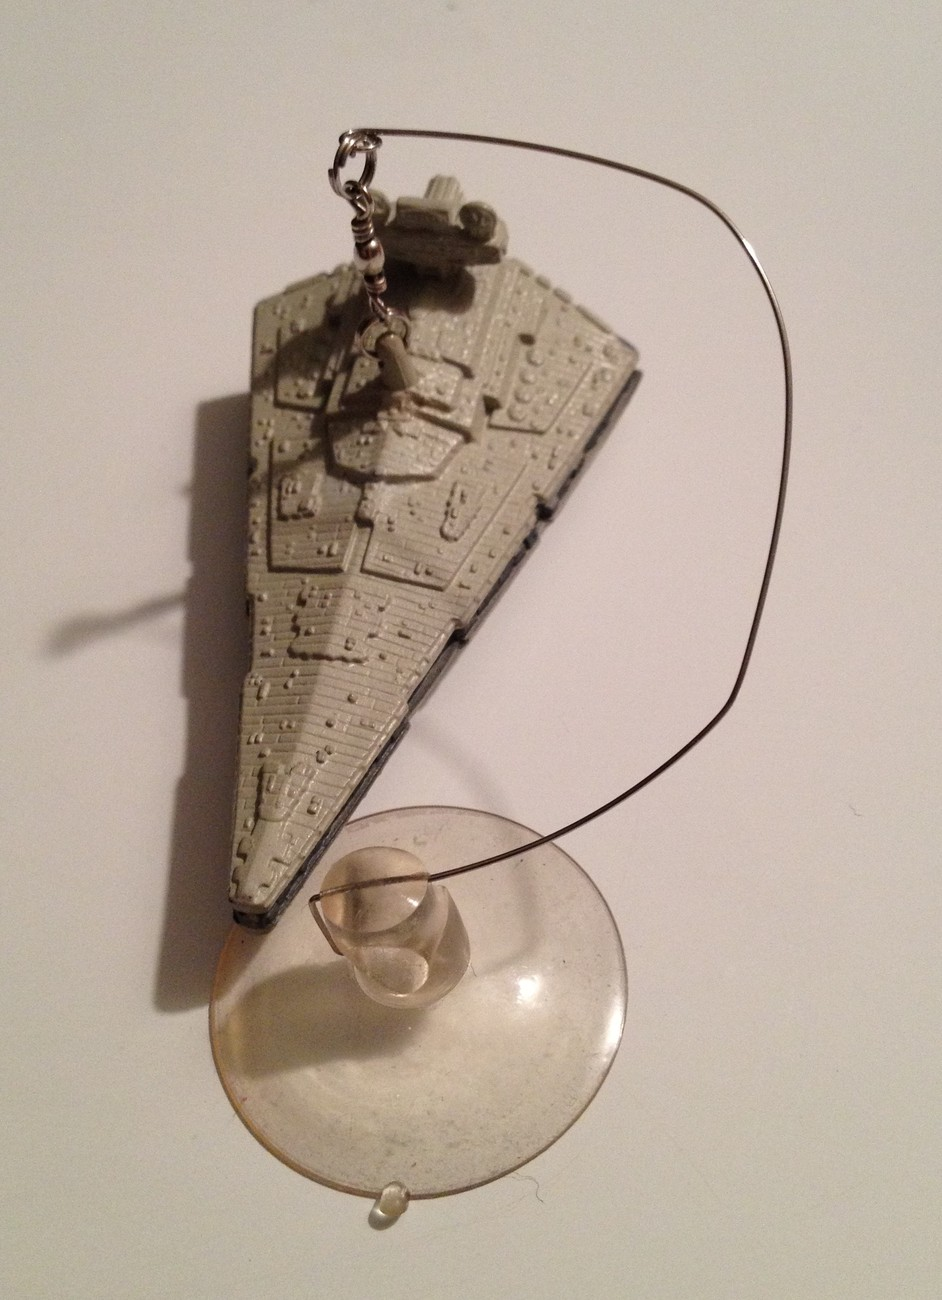 Star Wars Episode I Collectible Dangler Imperial Star Destroyer Applause - NEW